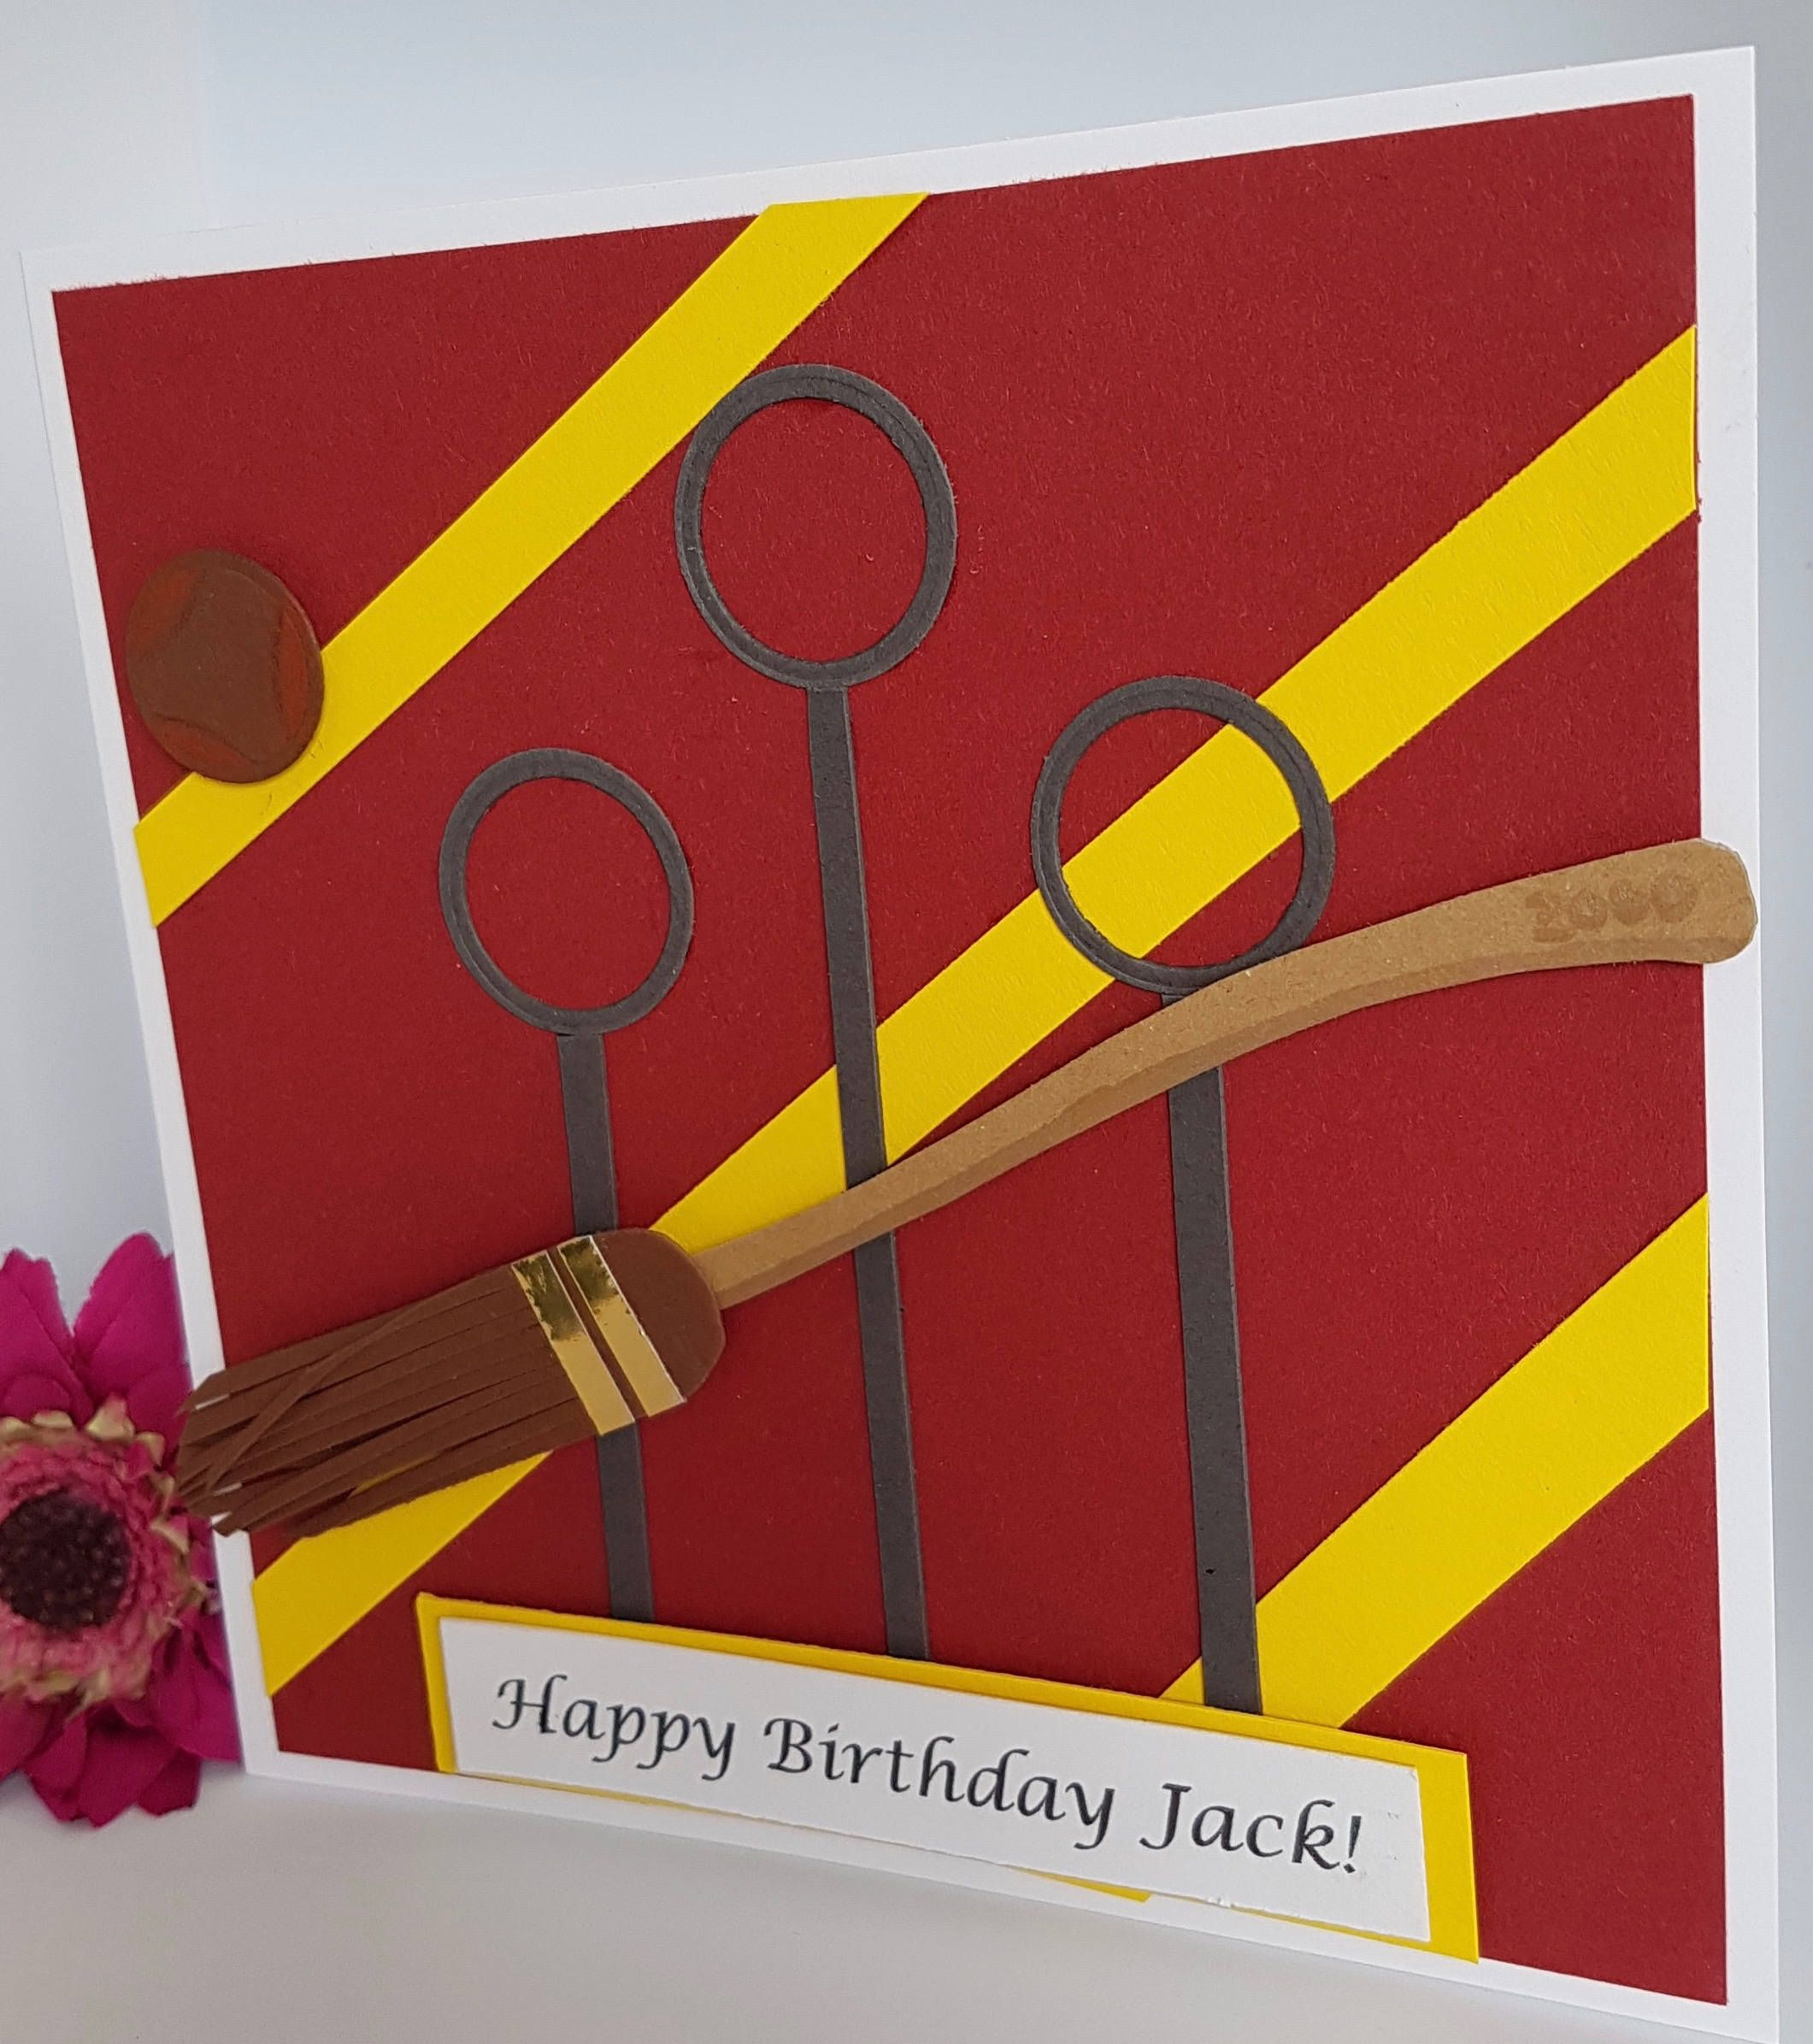 Personalised Quidditch Hogwarts Harry Potter Birthday Card Handmade Kids Adults Bd Harry Potter Cards Happy Birthday Cards Handmade Harry Potter Birthday Cards